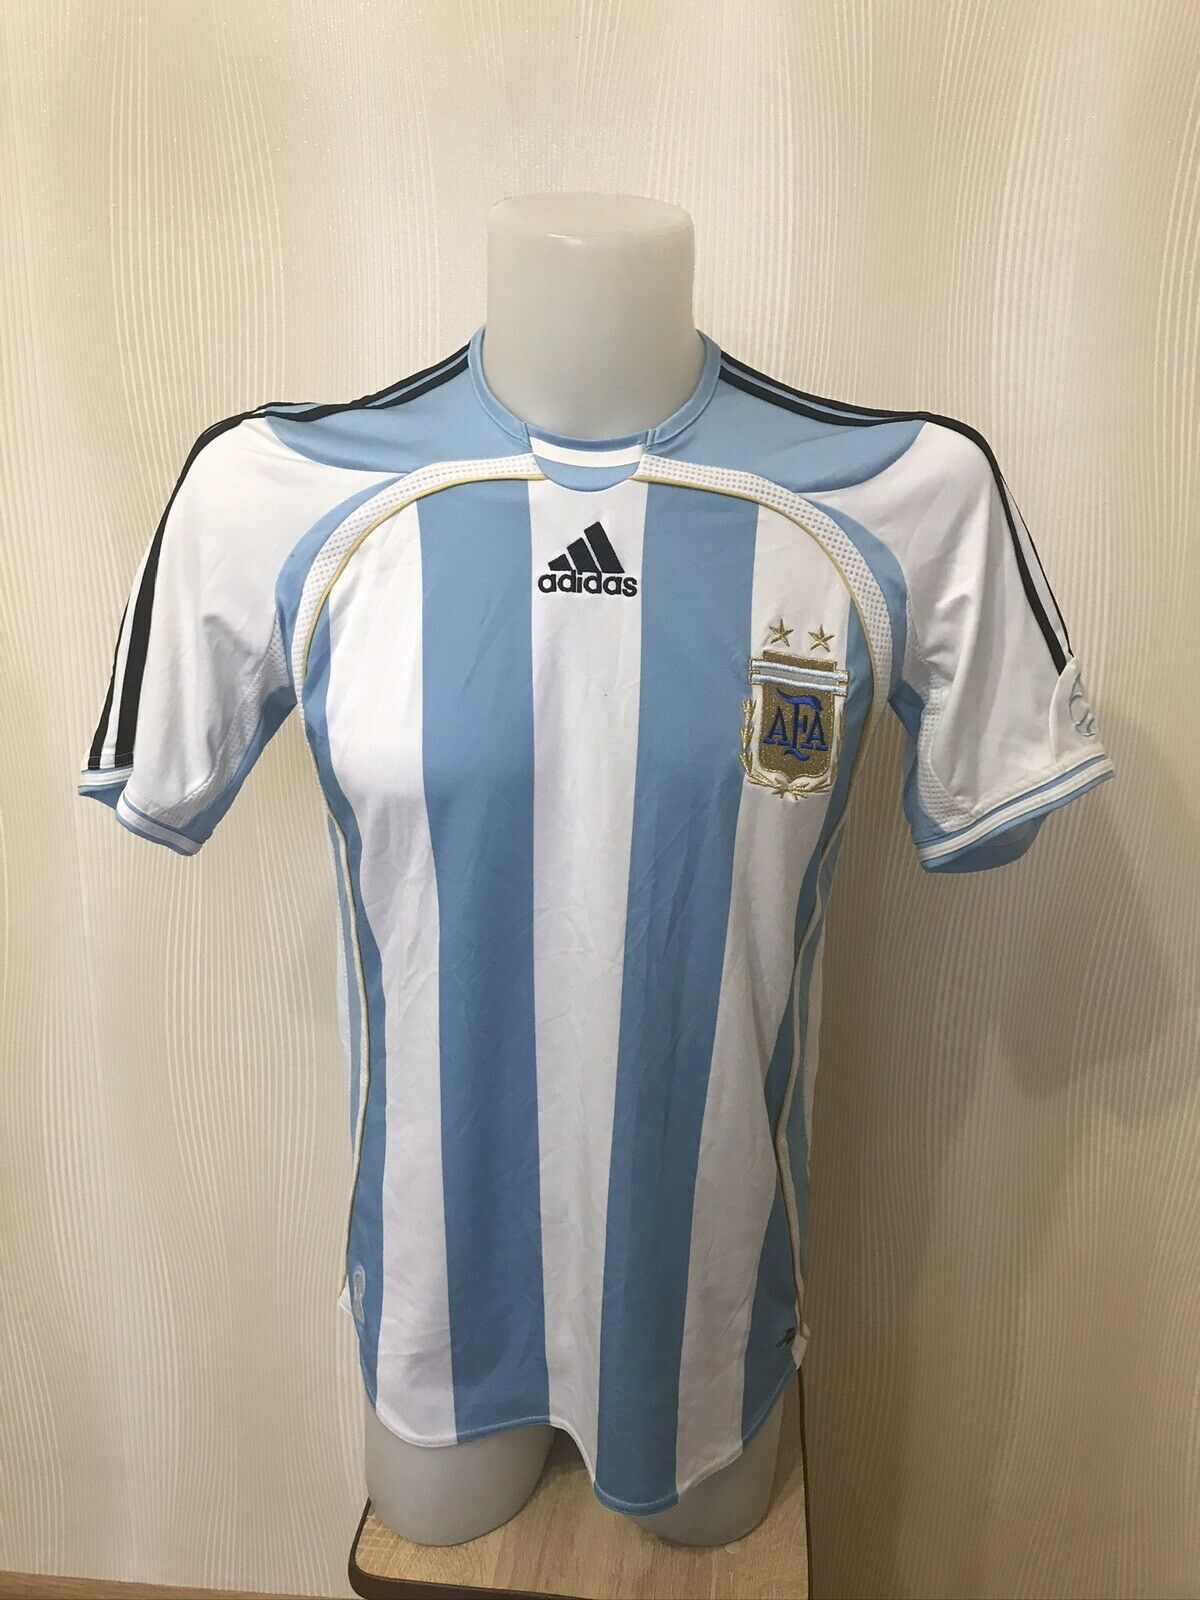 Argentina national team 2006/2007 home Size S Adidas 739802 jersey